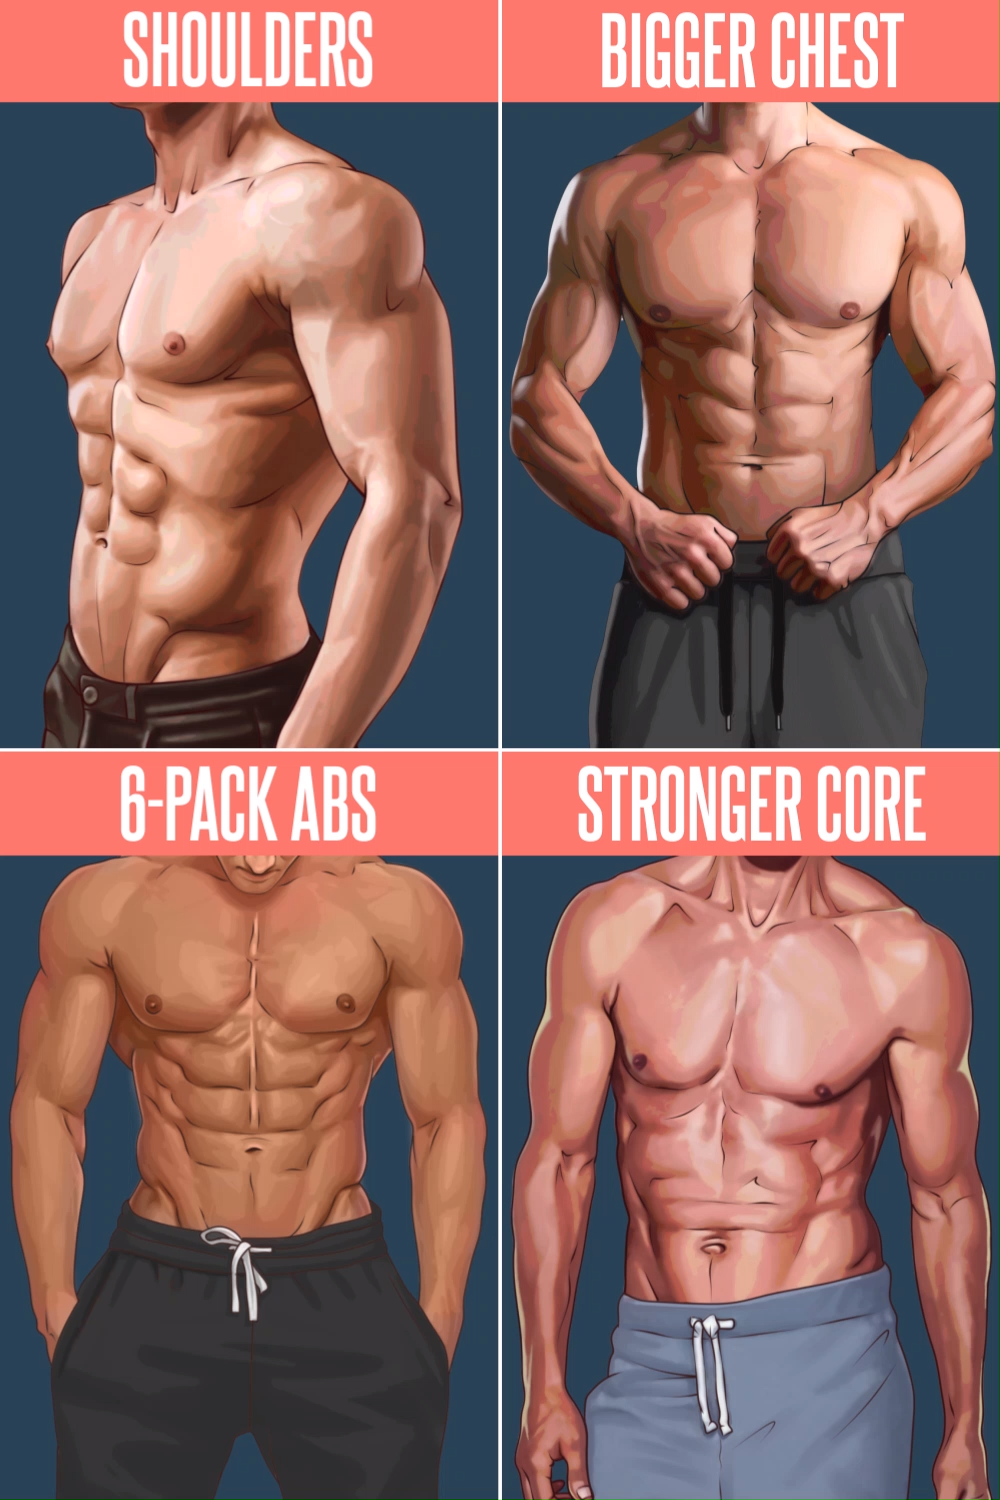 Install Now & Get Personalized Workout Plan